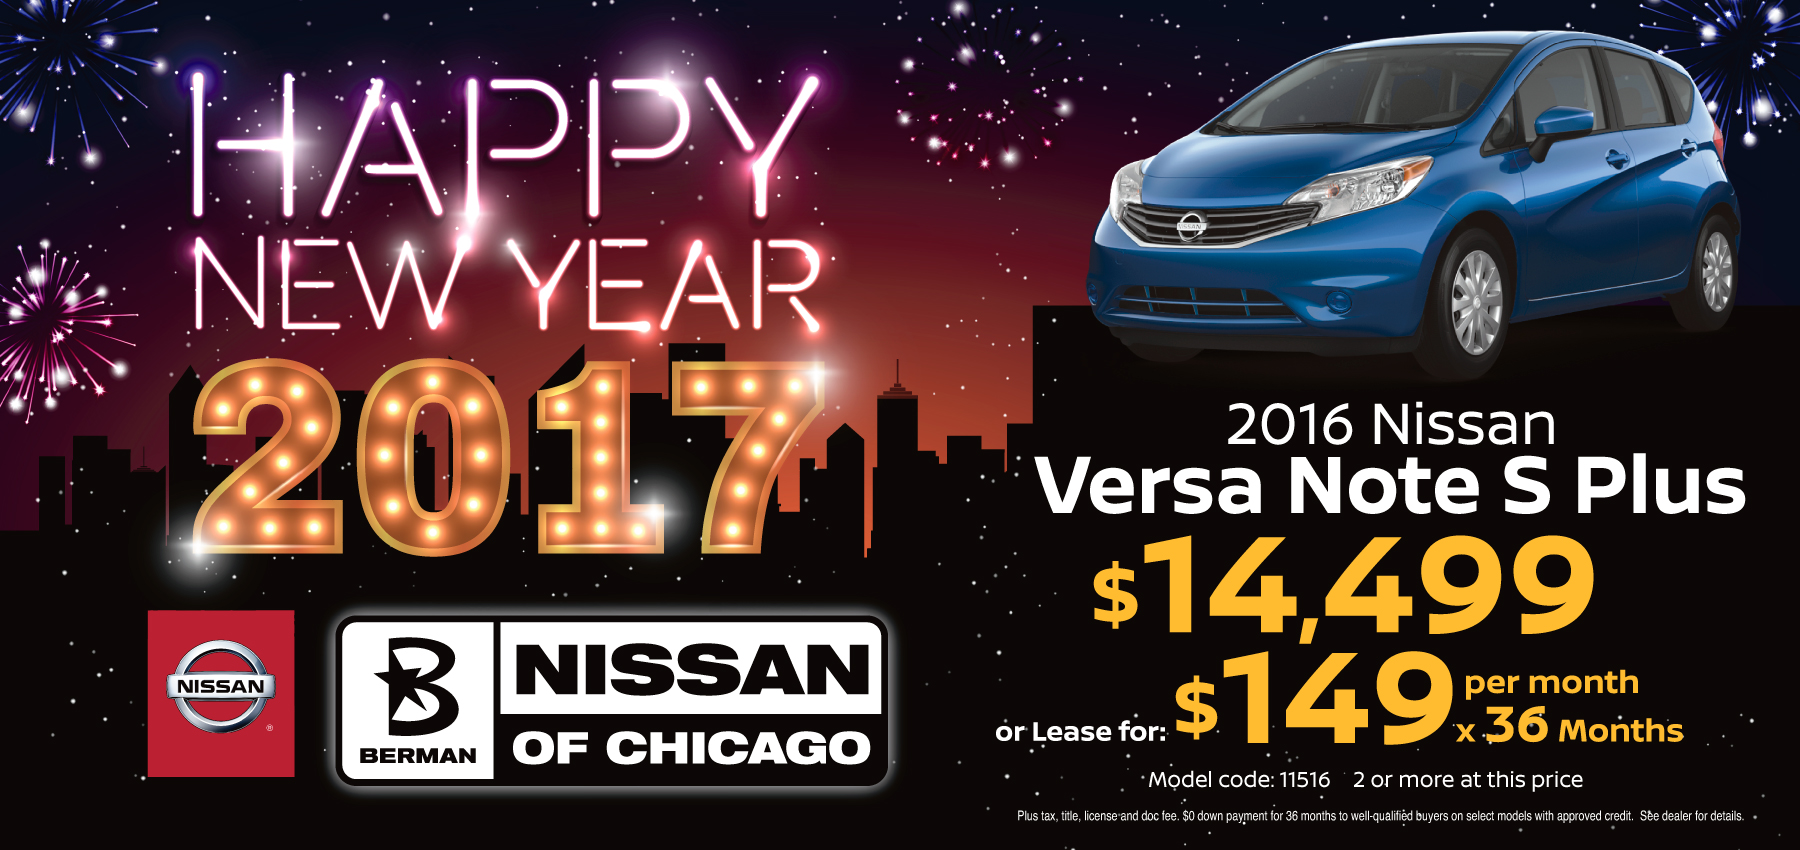 2016 Nissan Versa Note S Plus January Offer